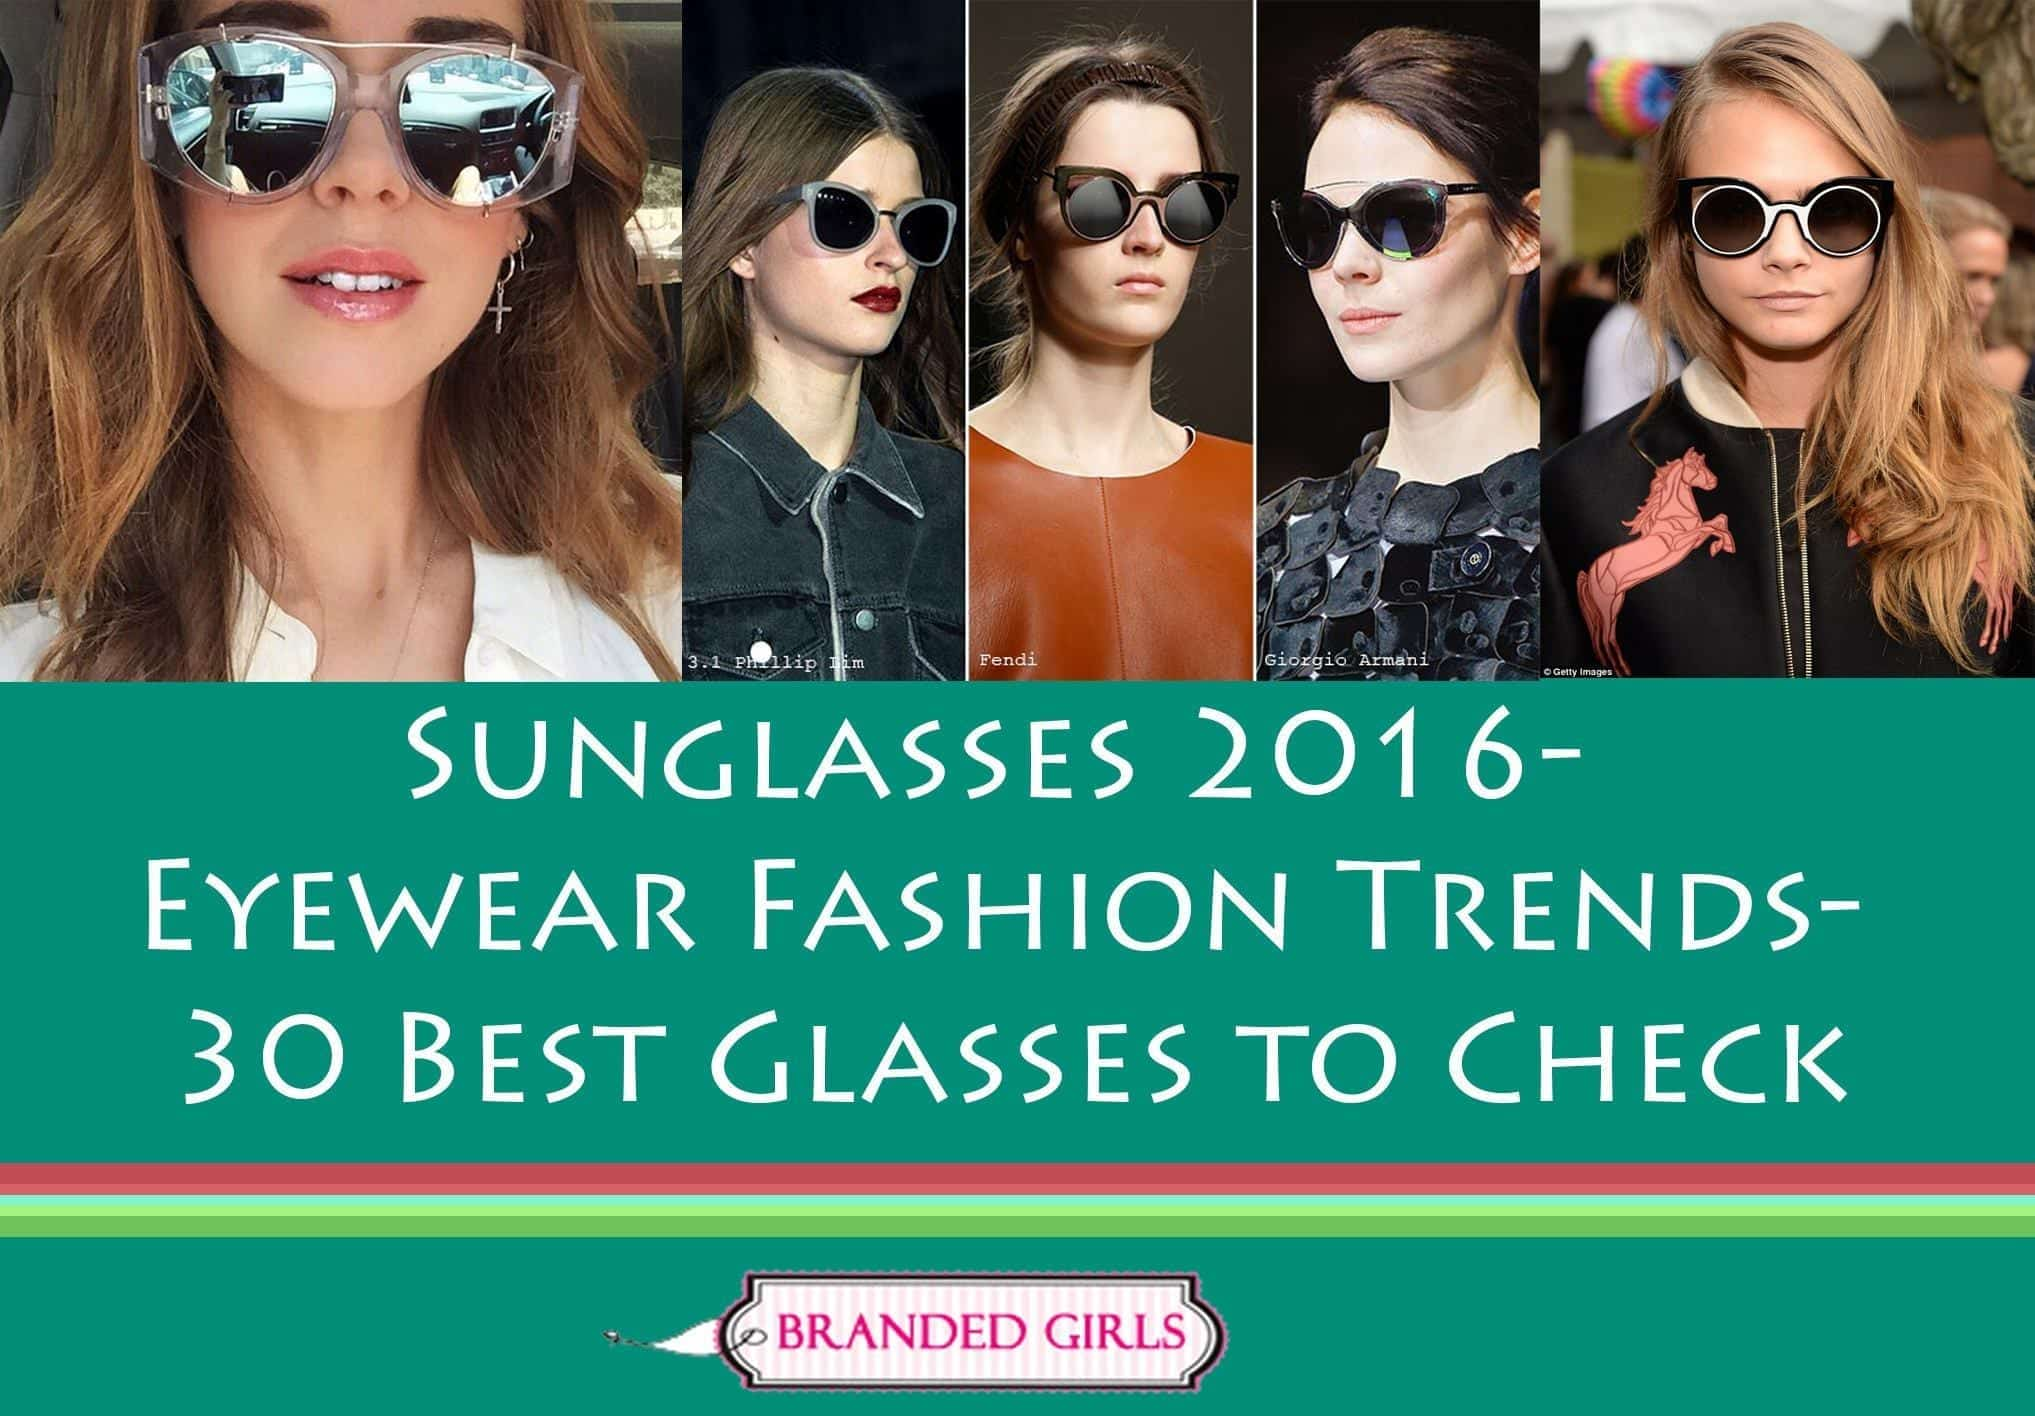 Sunglasses 2016-Eyewaear Fashion Trends-30 Best Glasses to Check